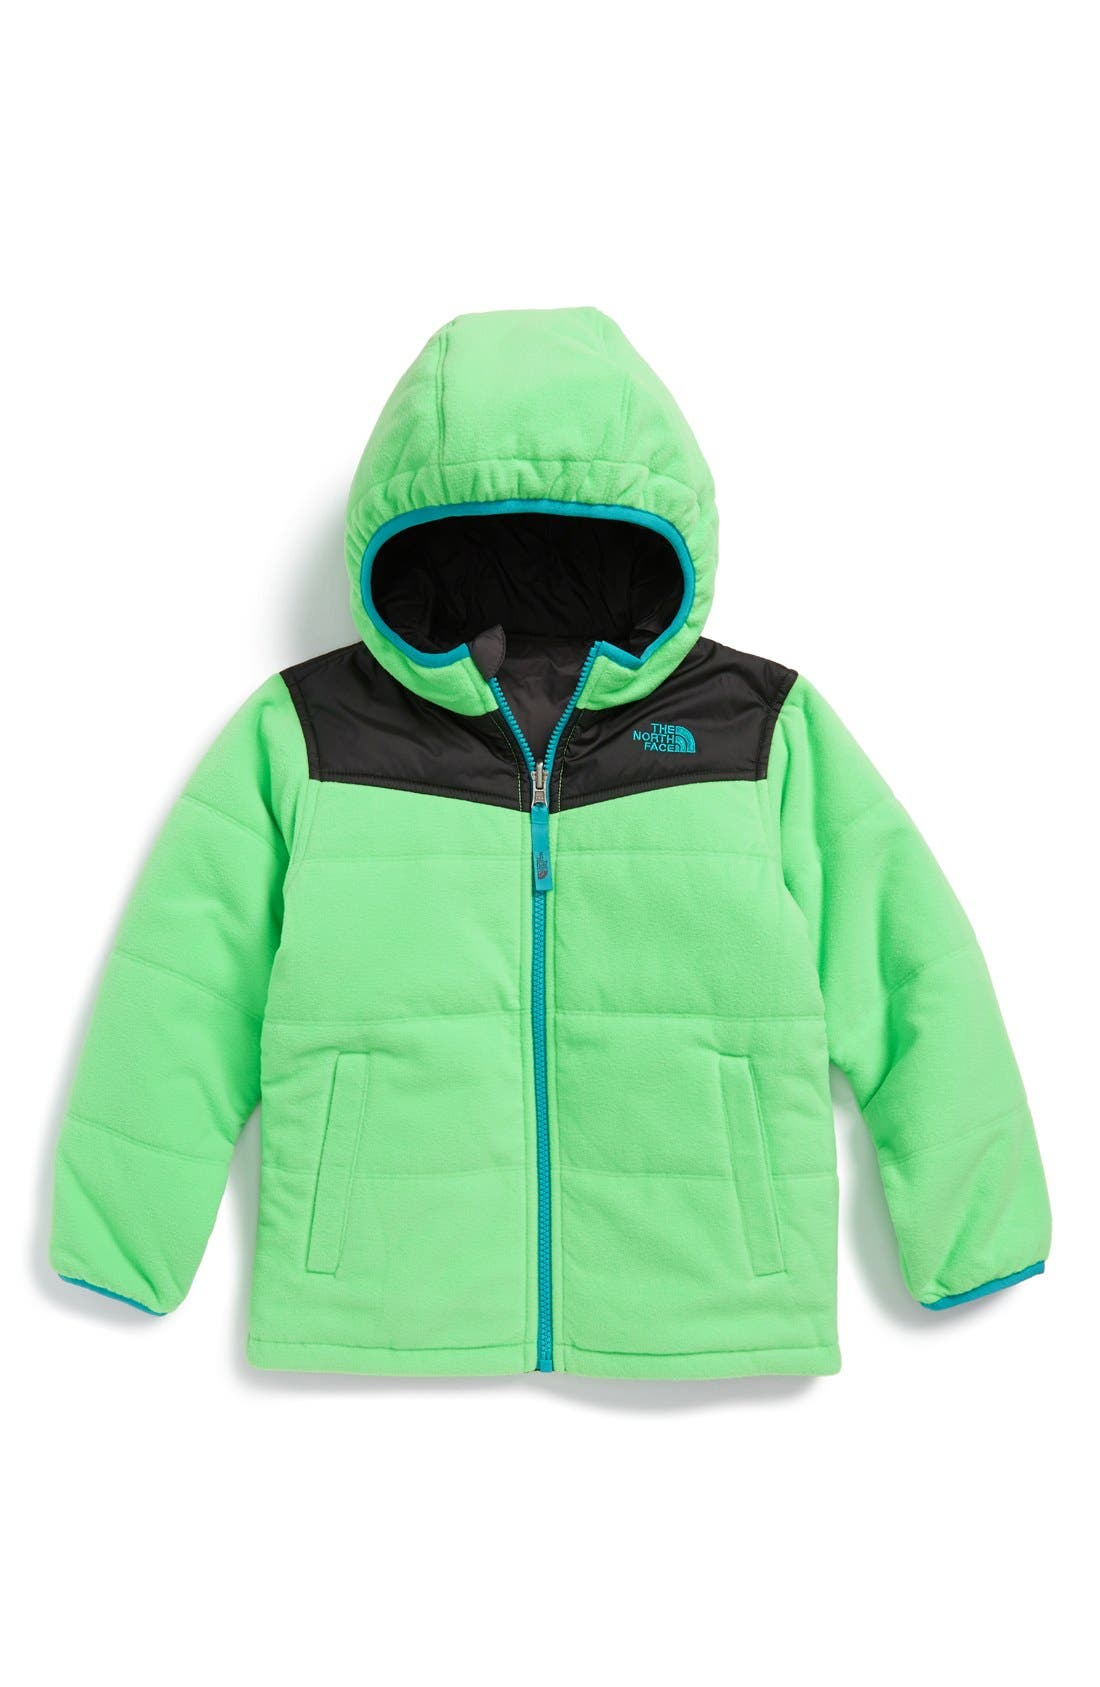 Main Image - The North Face 'True or False' Reversible Water Resistant Jacket (Toddler Boys & Little Boys)